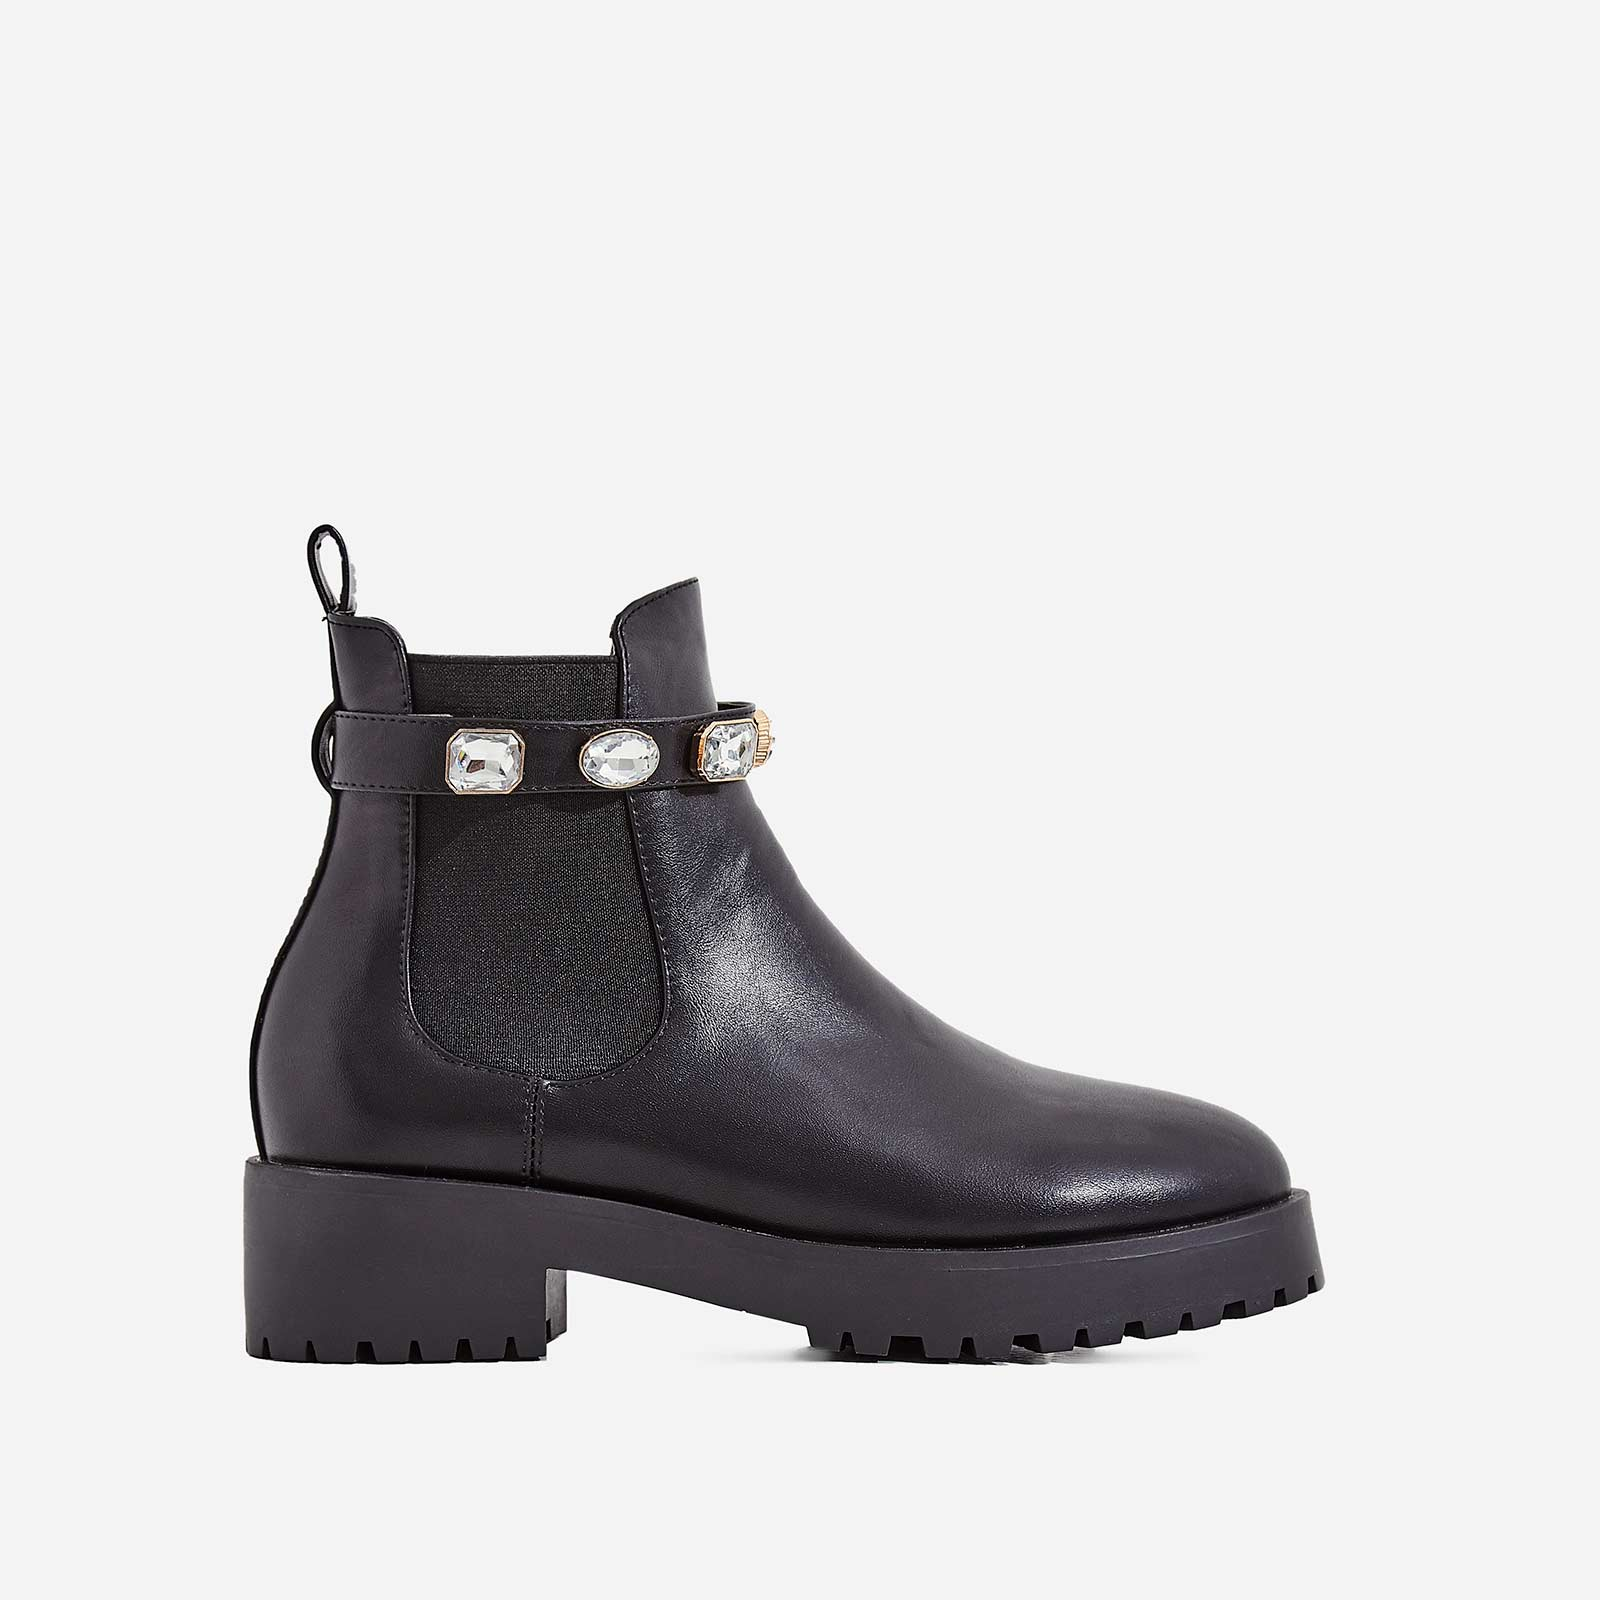 Gem Jewel Detail Strap Ankle Biker Boot In Black Faux Leather